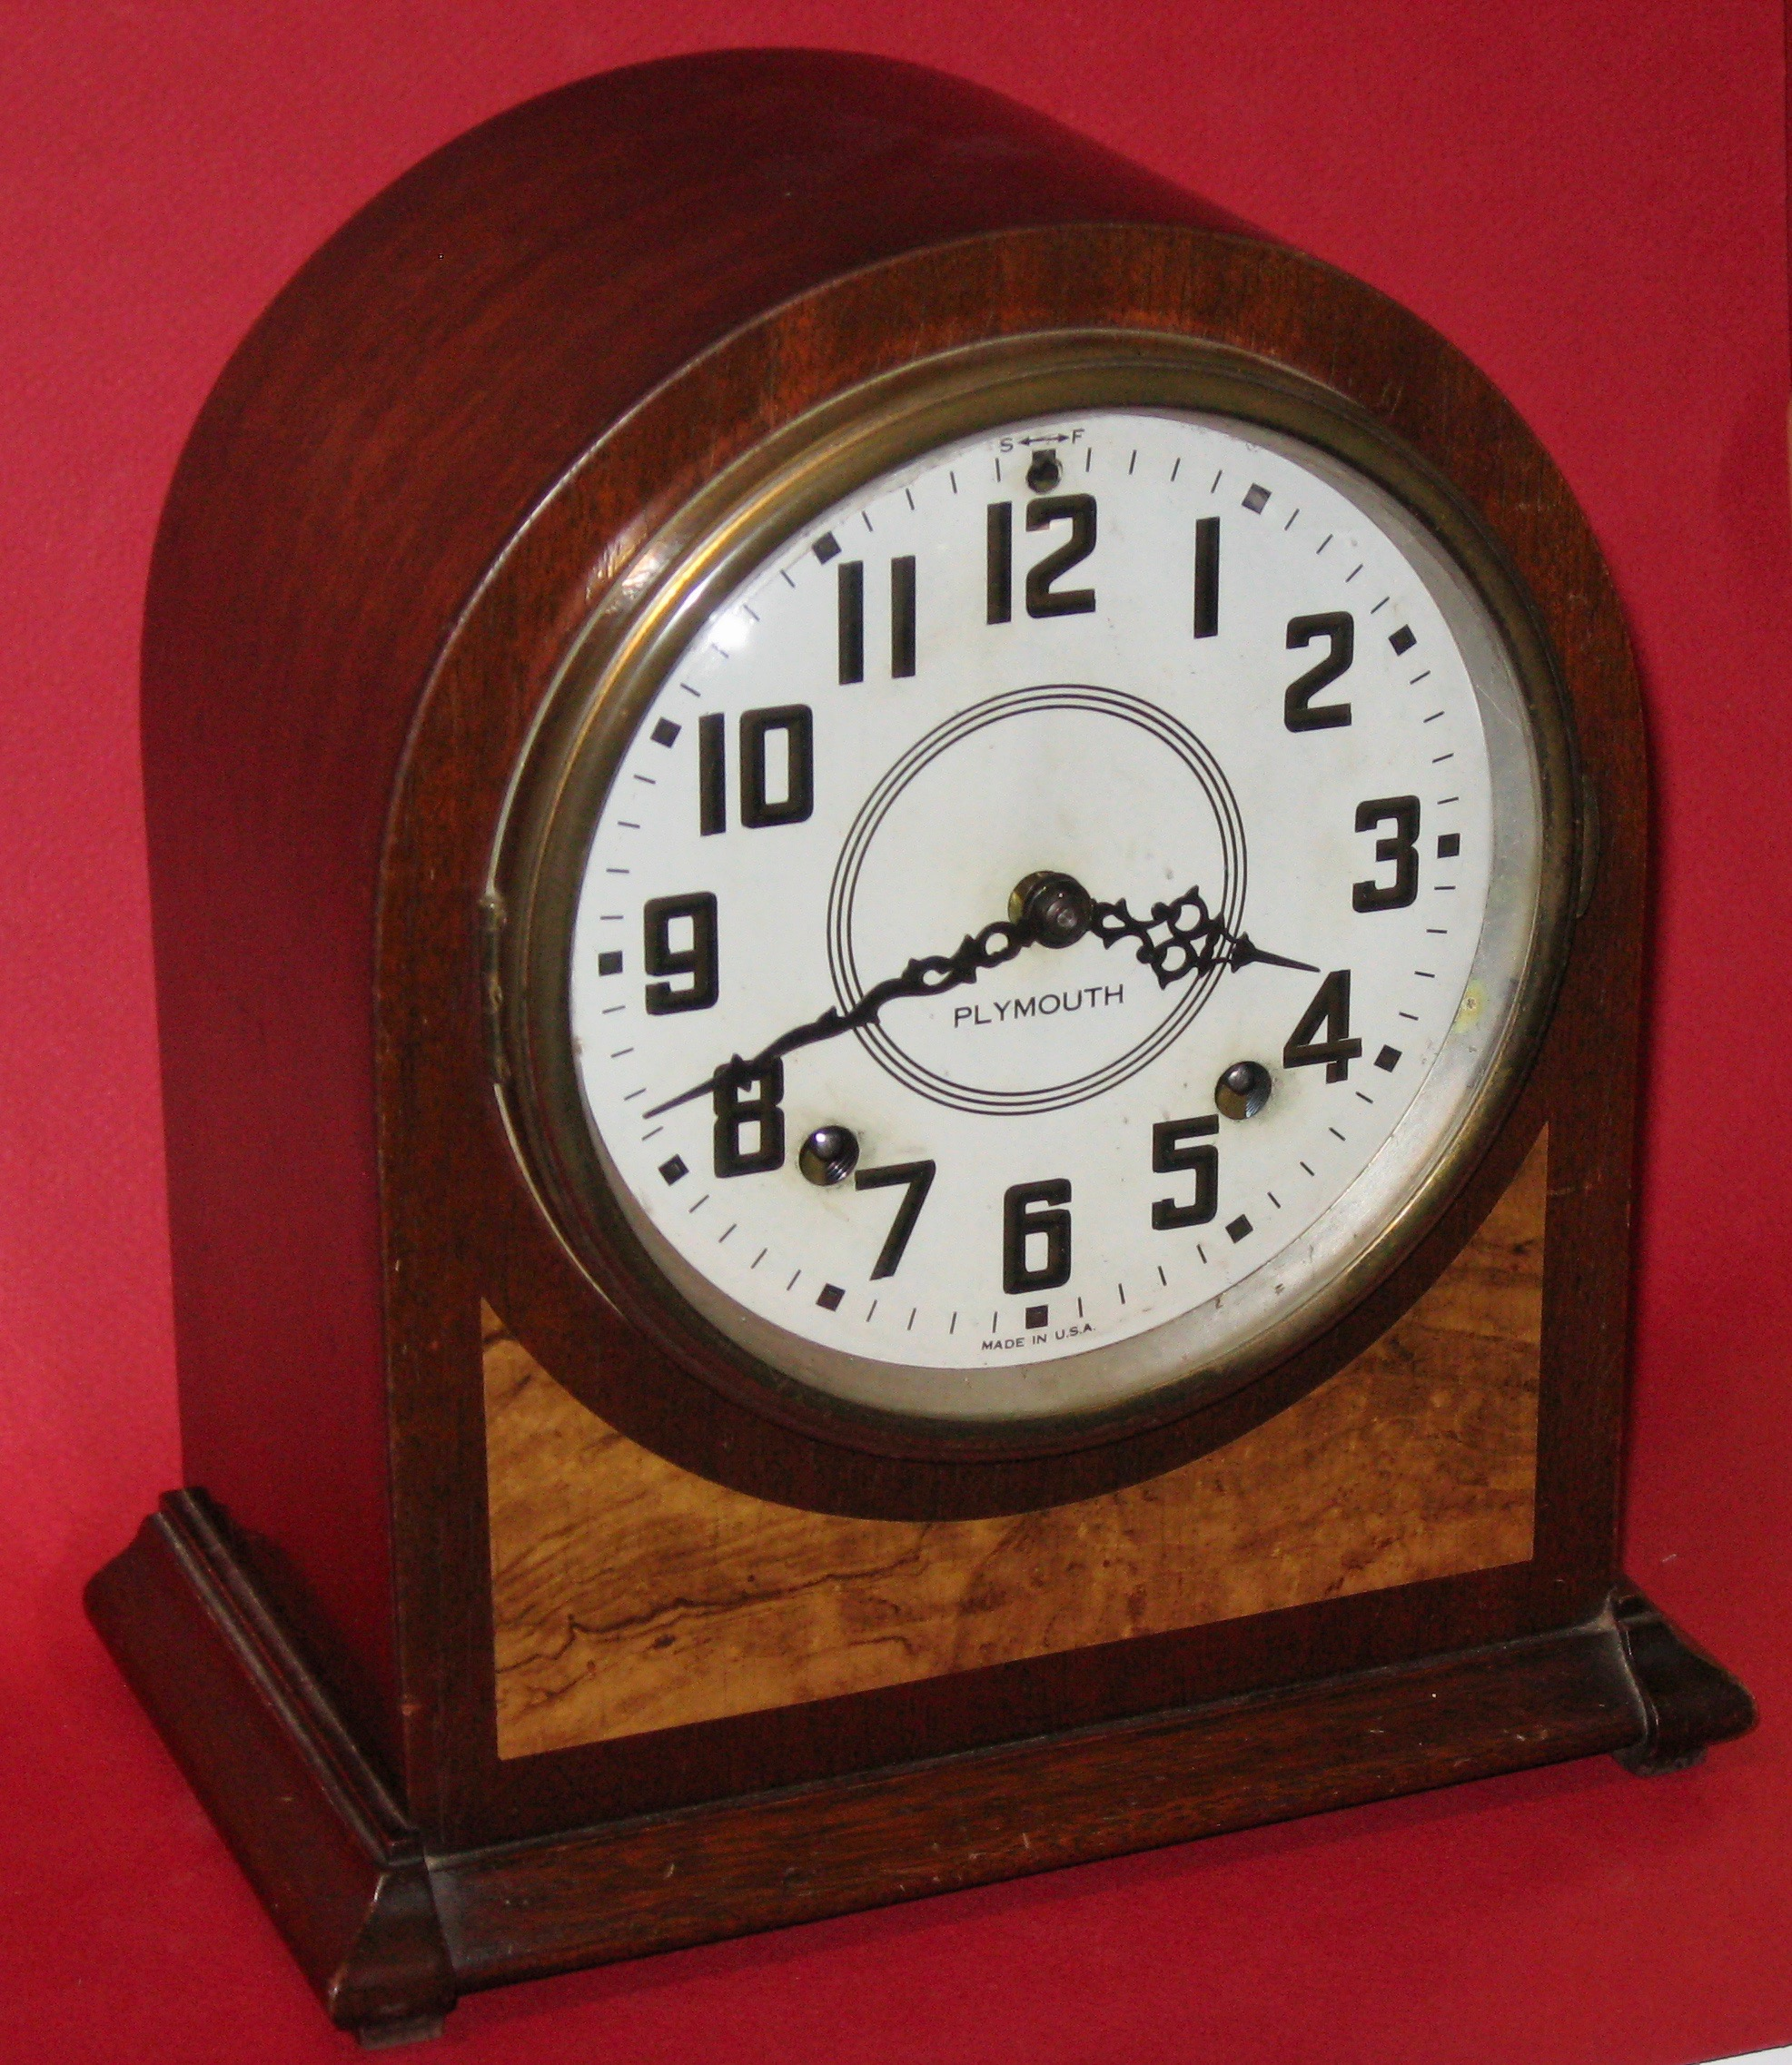 Setting your clock back from daylight saving time clockinfo amipublicfo Image collections